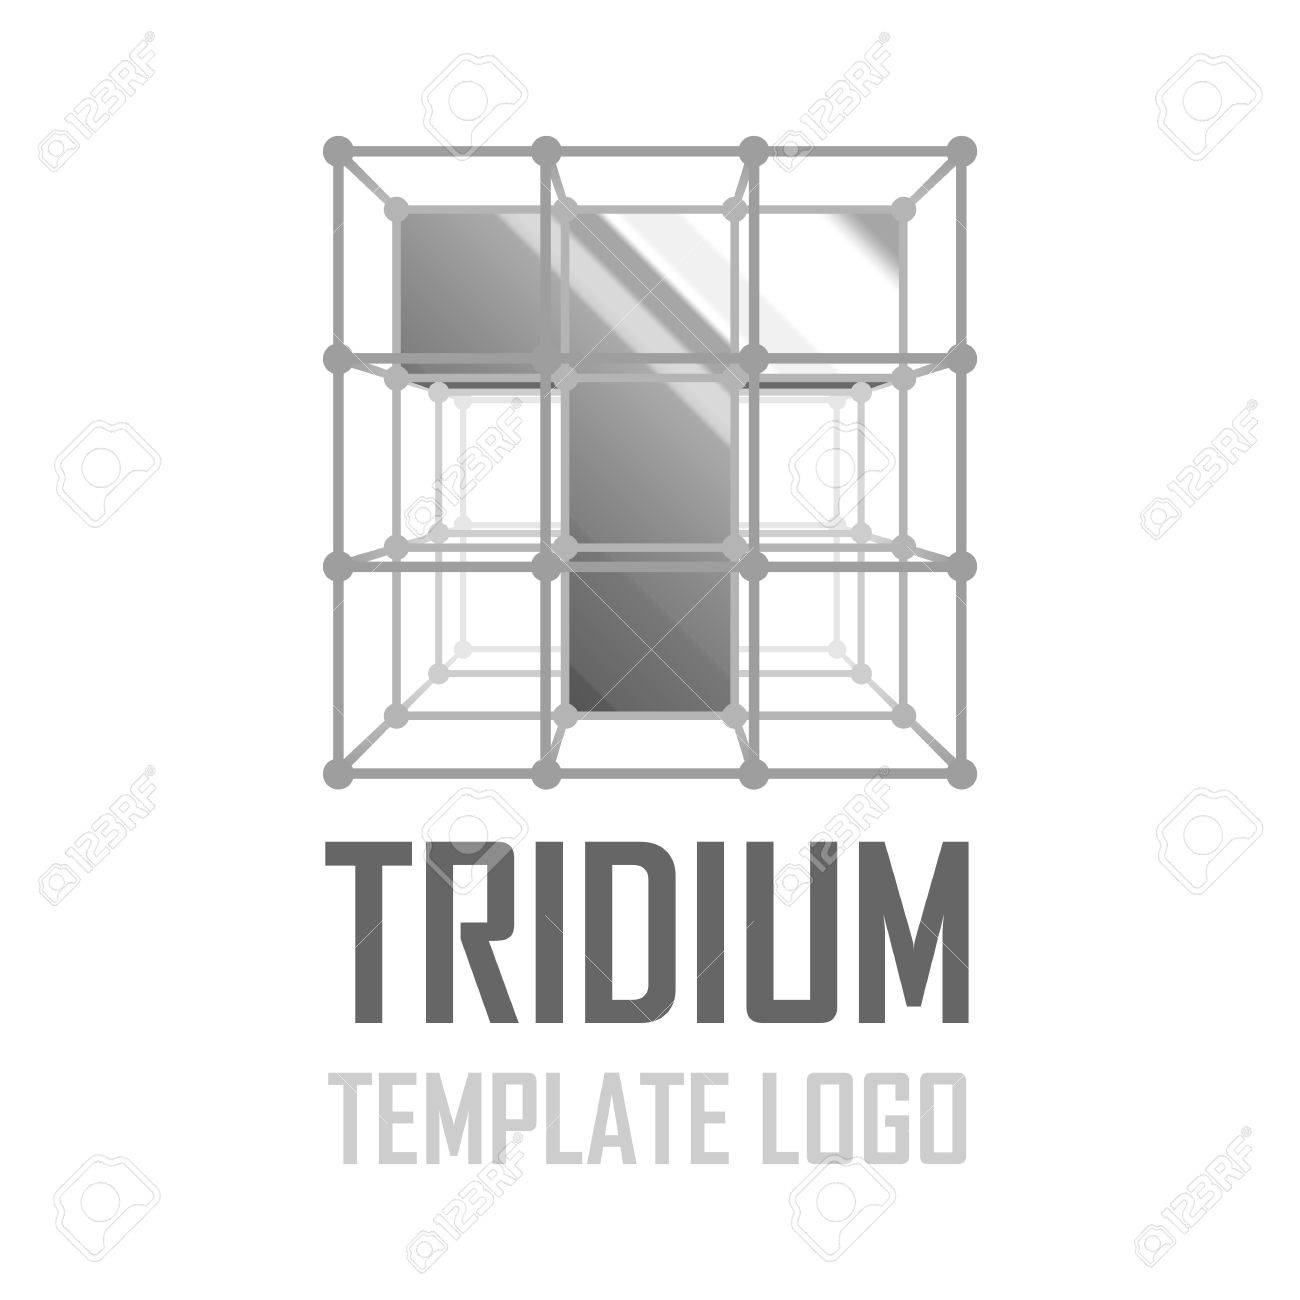 vector logo template letter t icon stylized letter t in the